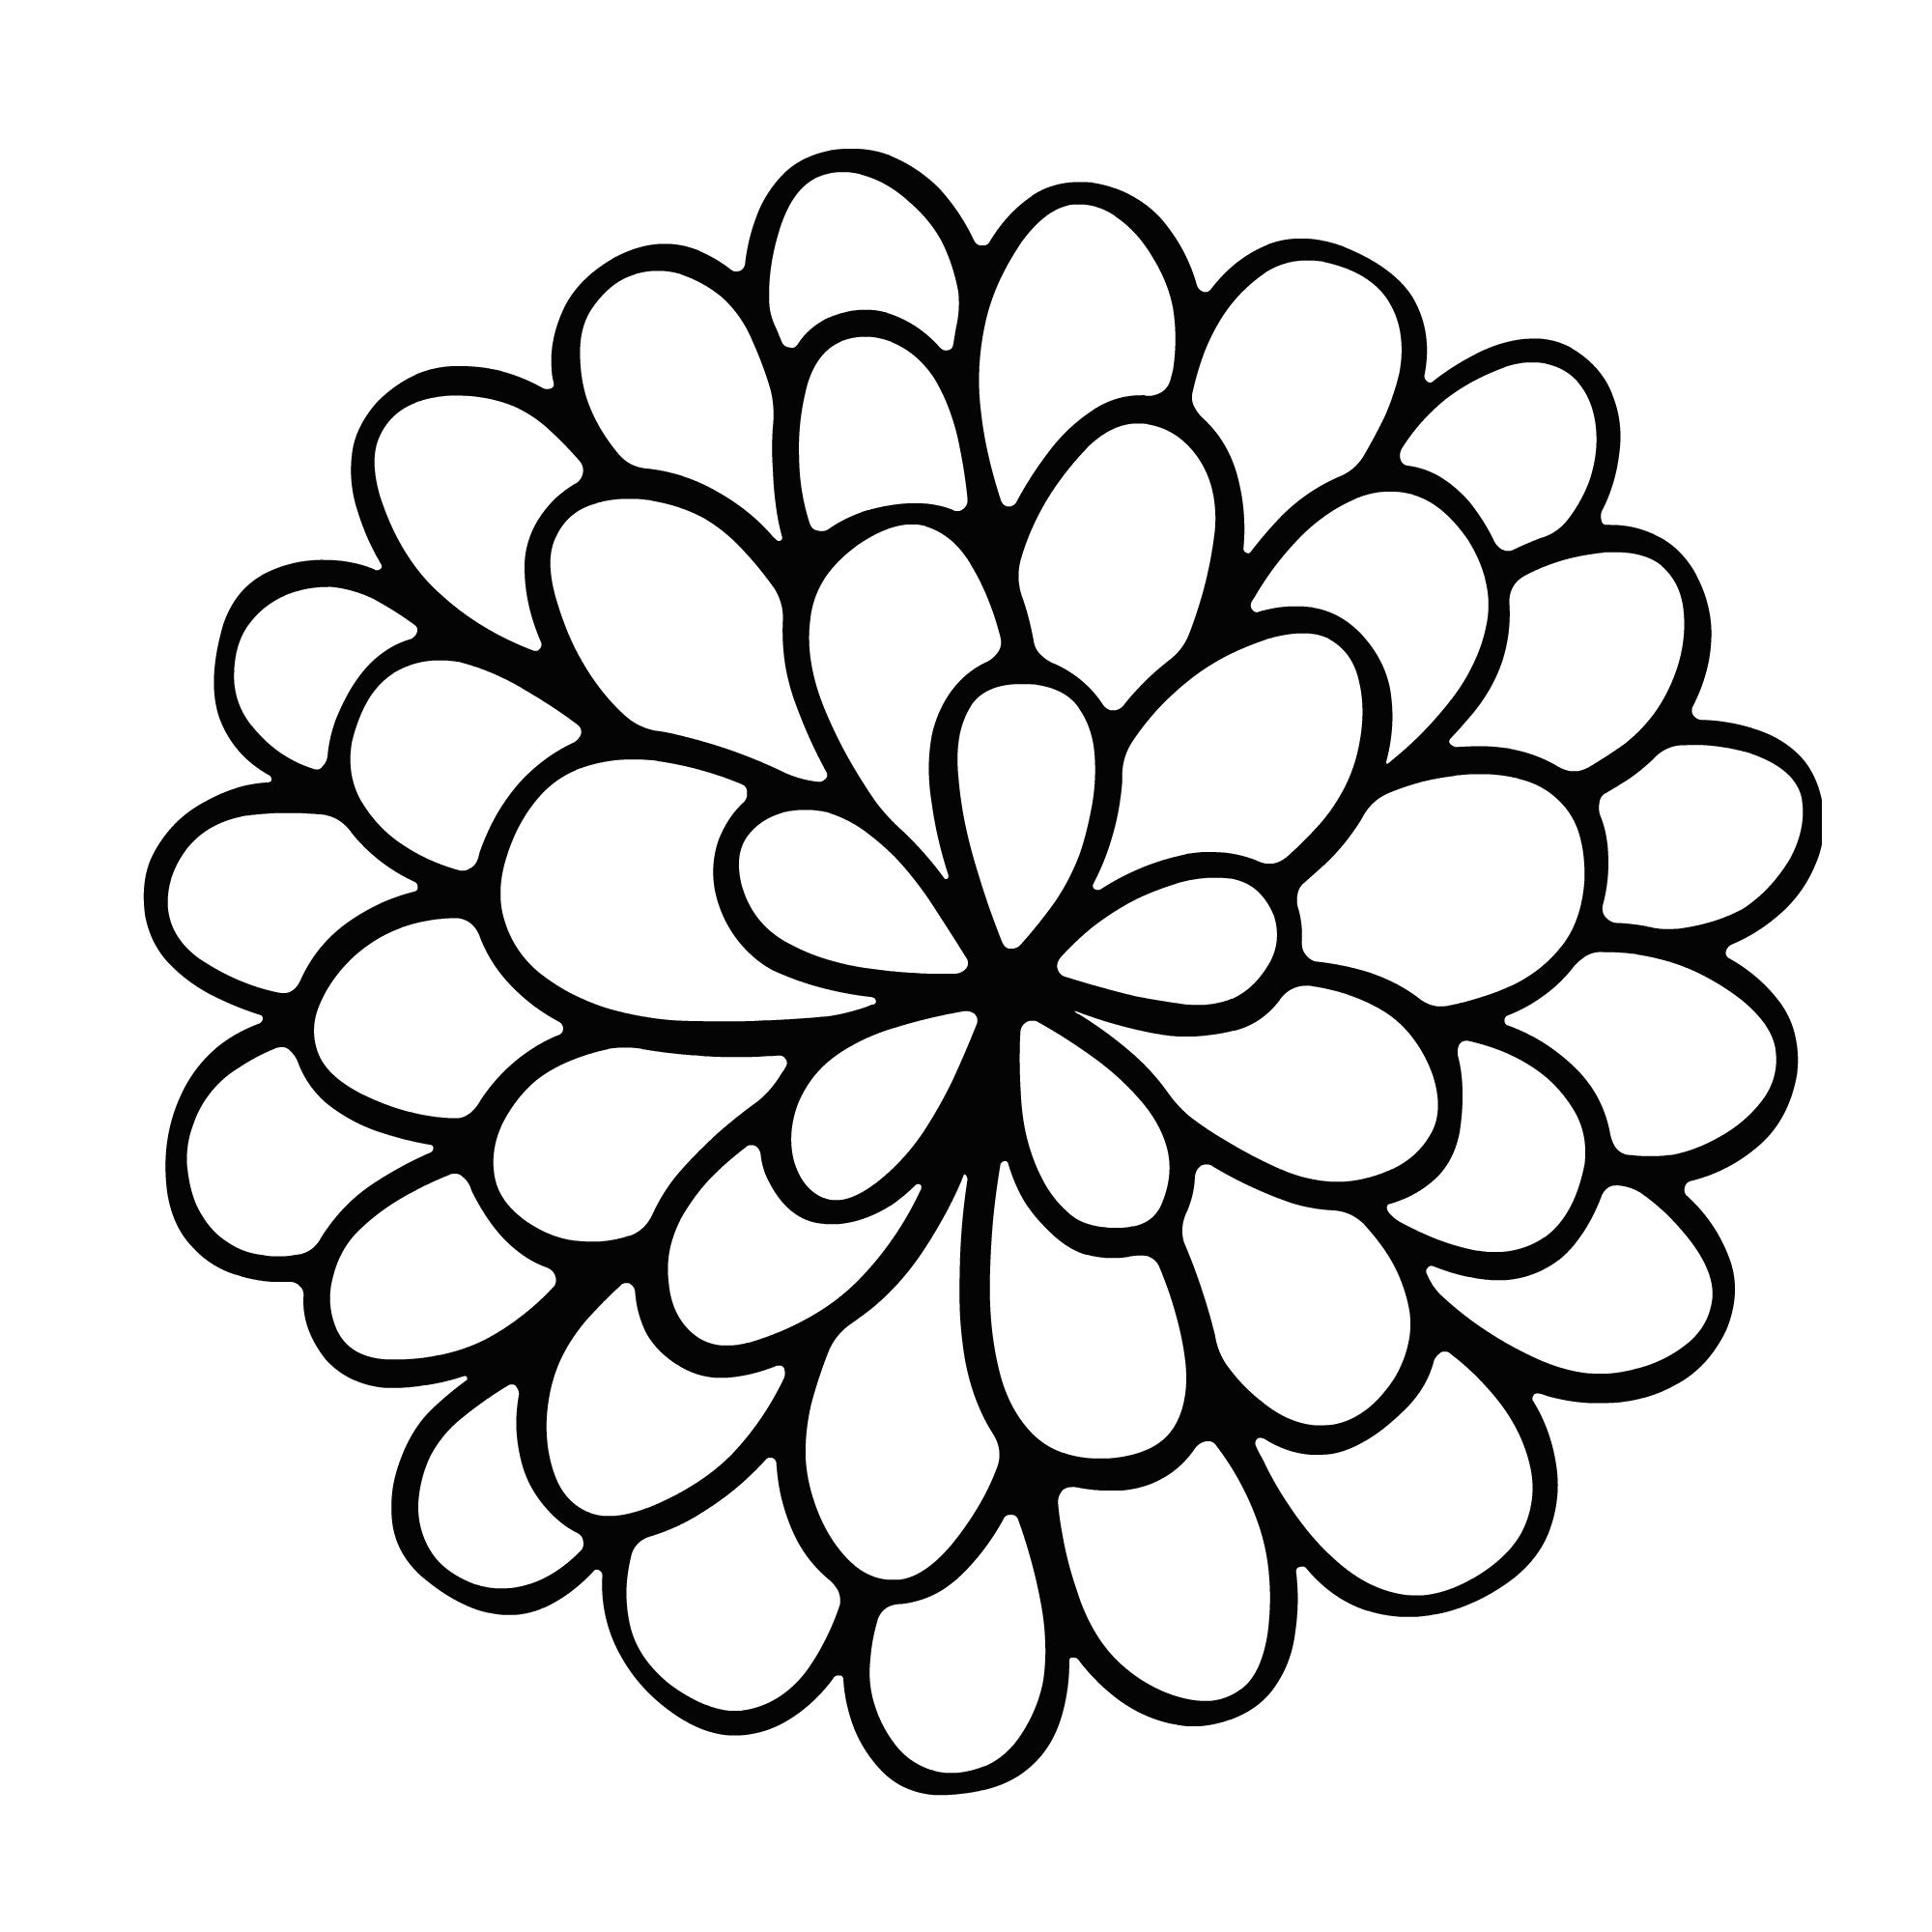 Marigold Flower Drawing Easy Sketch Coloring Page Flower Drawing